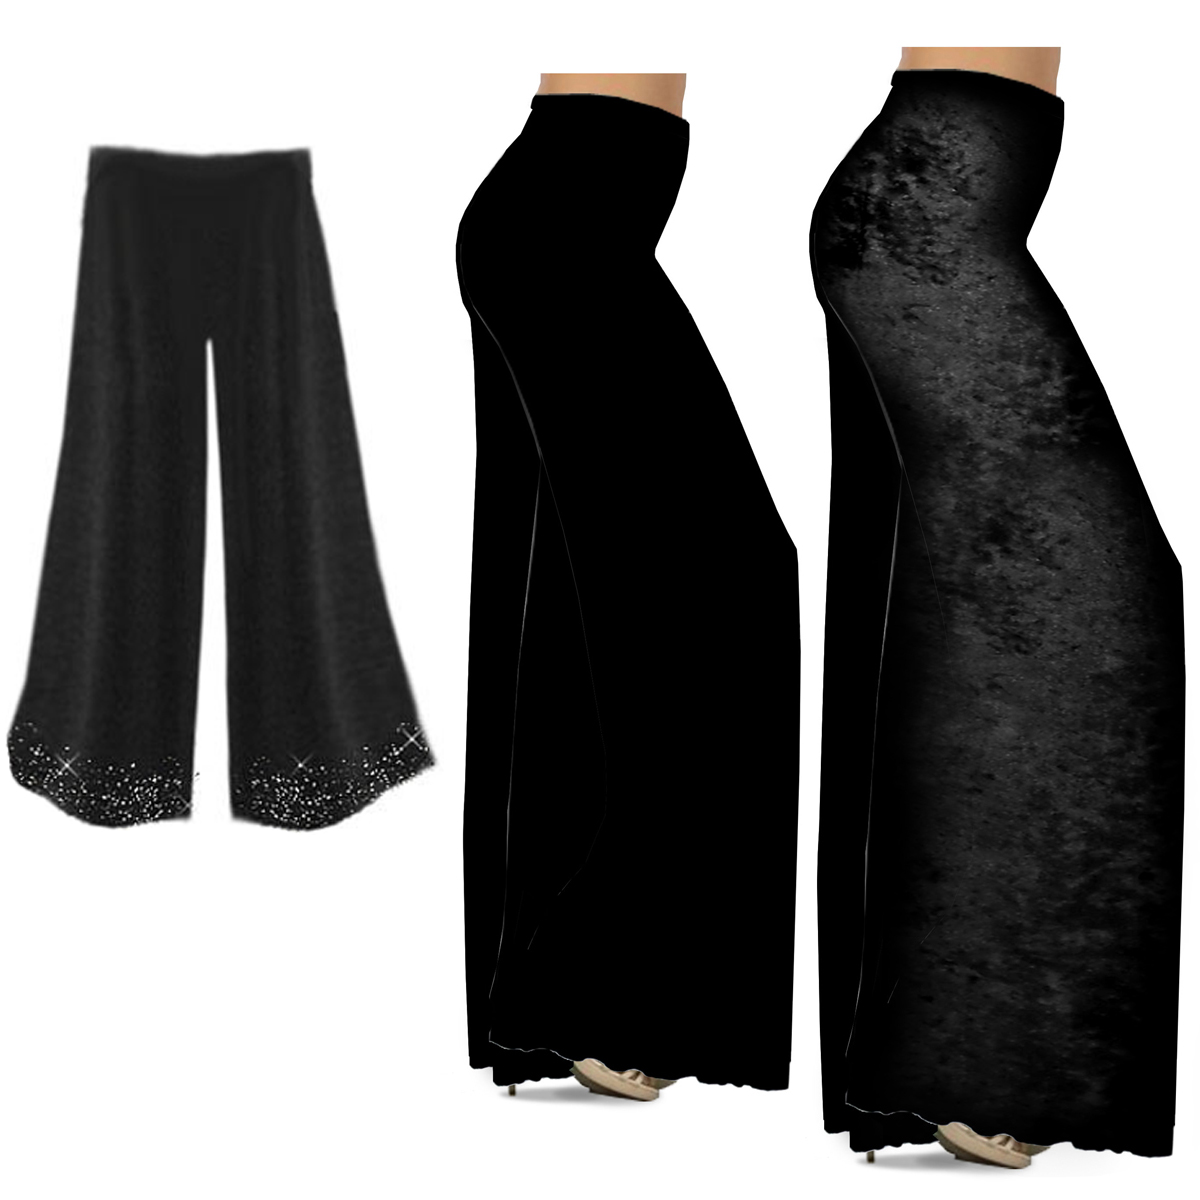 0f92894286475 CLEARANCE! Black Slinky or Cotton Plus Size Wide Leg Palazzo Pants M ...